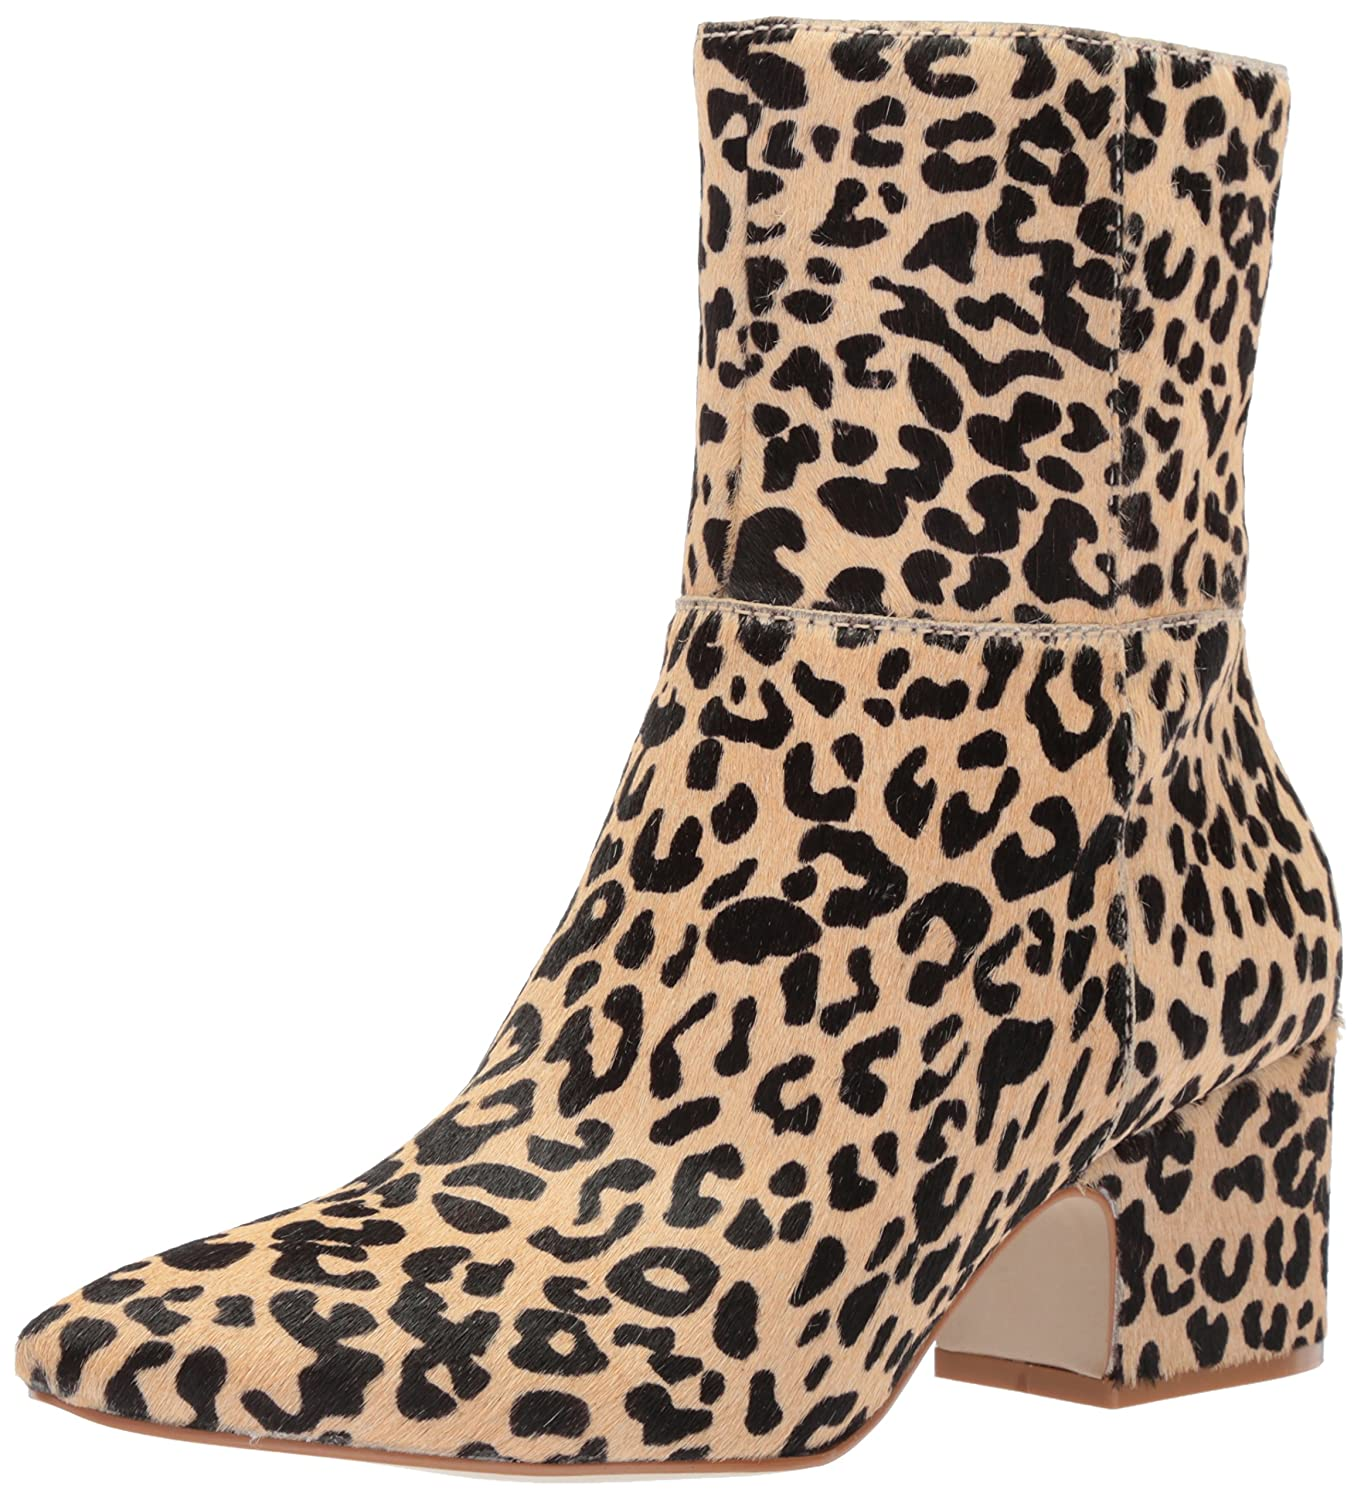 Matisse Women's at Ease Ankle Boot B0769XLJ3Z 10 B(M) US|Leopard Cow Hair